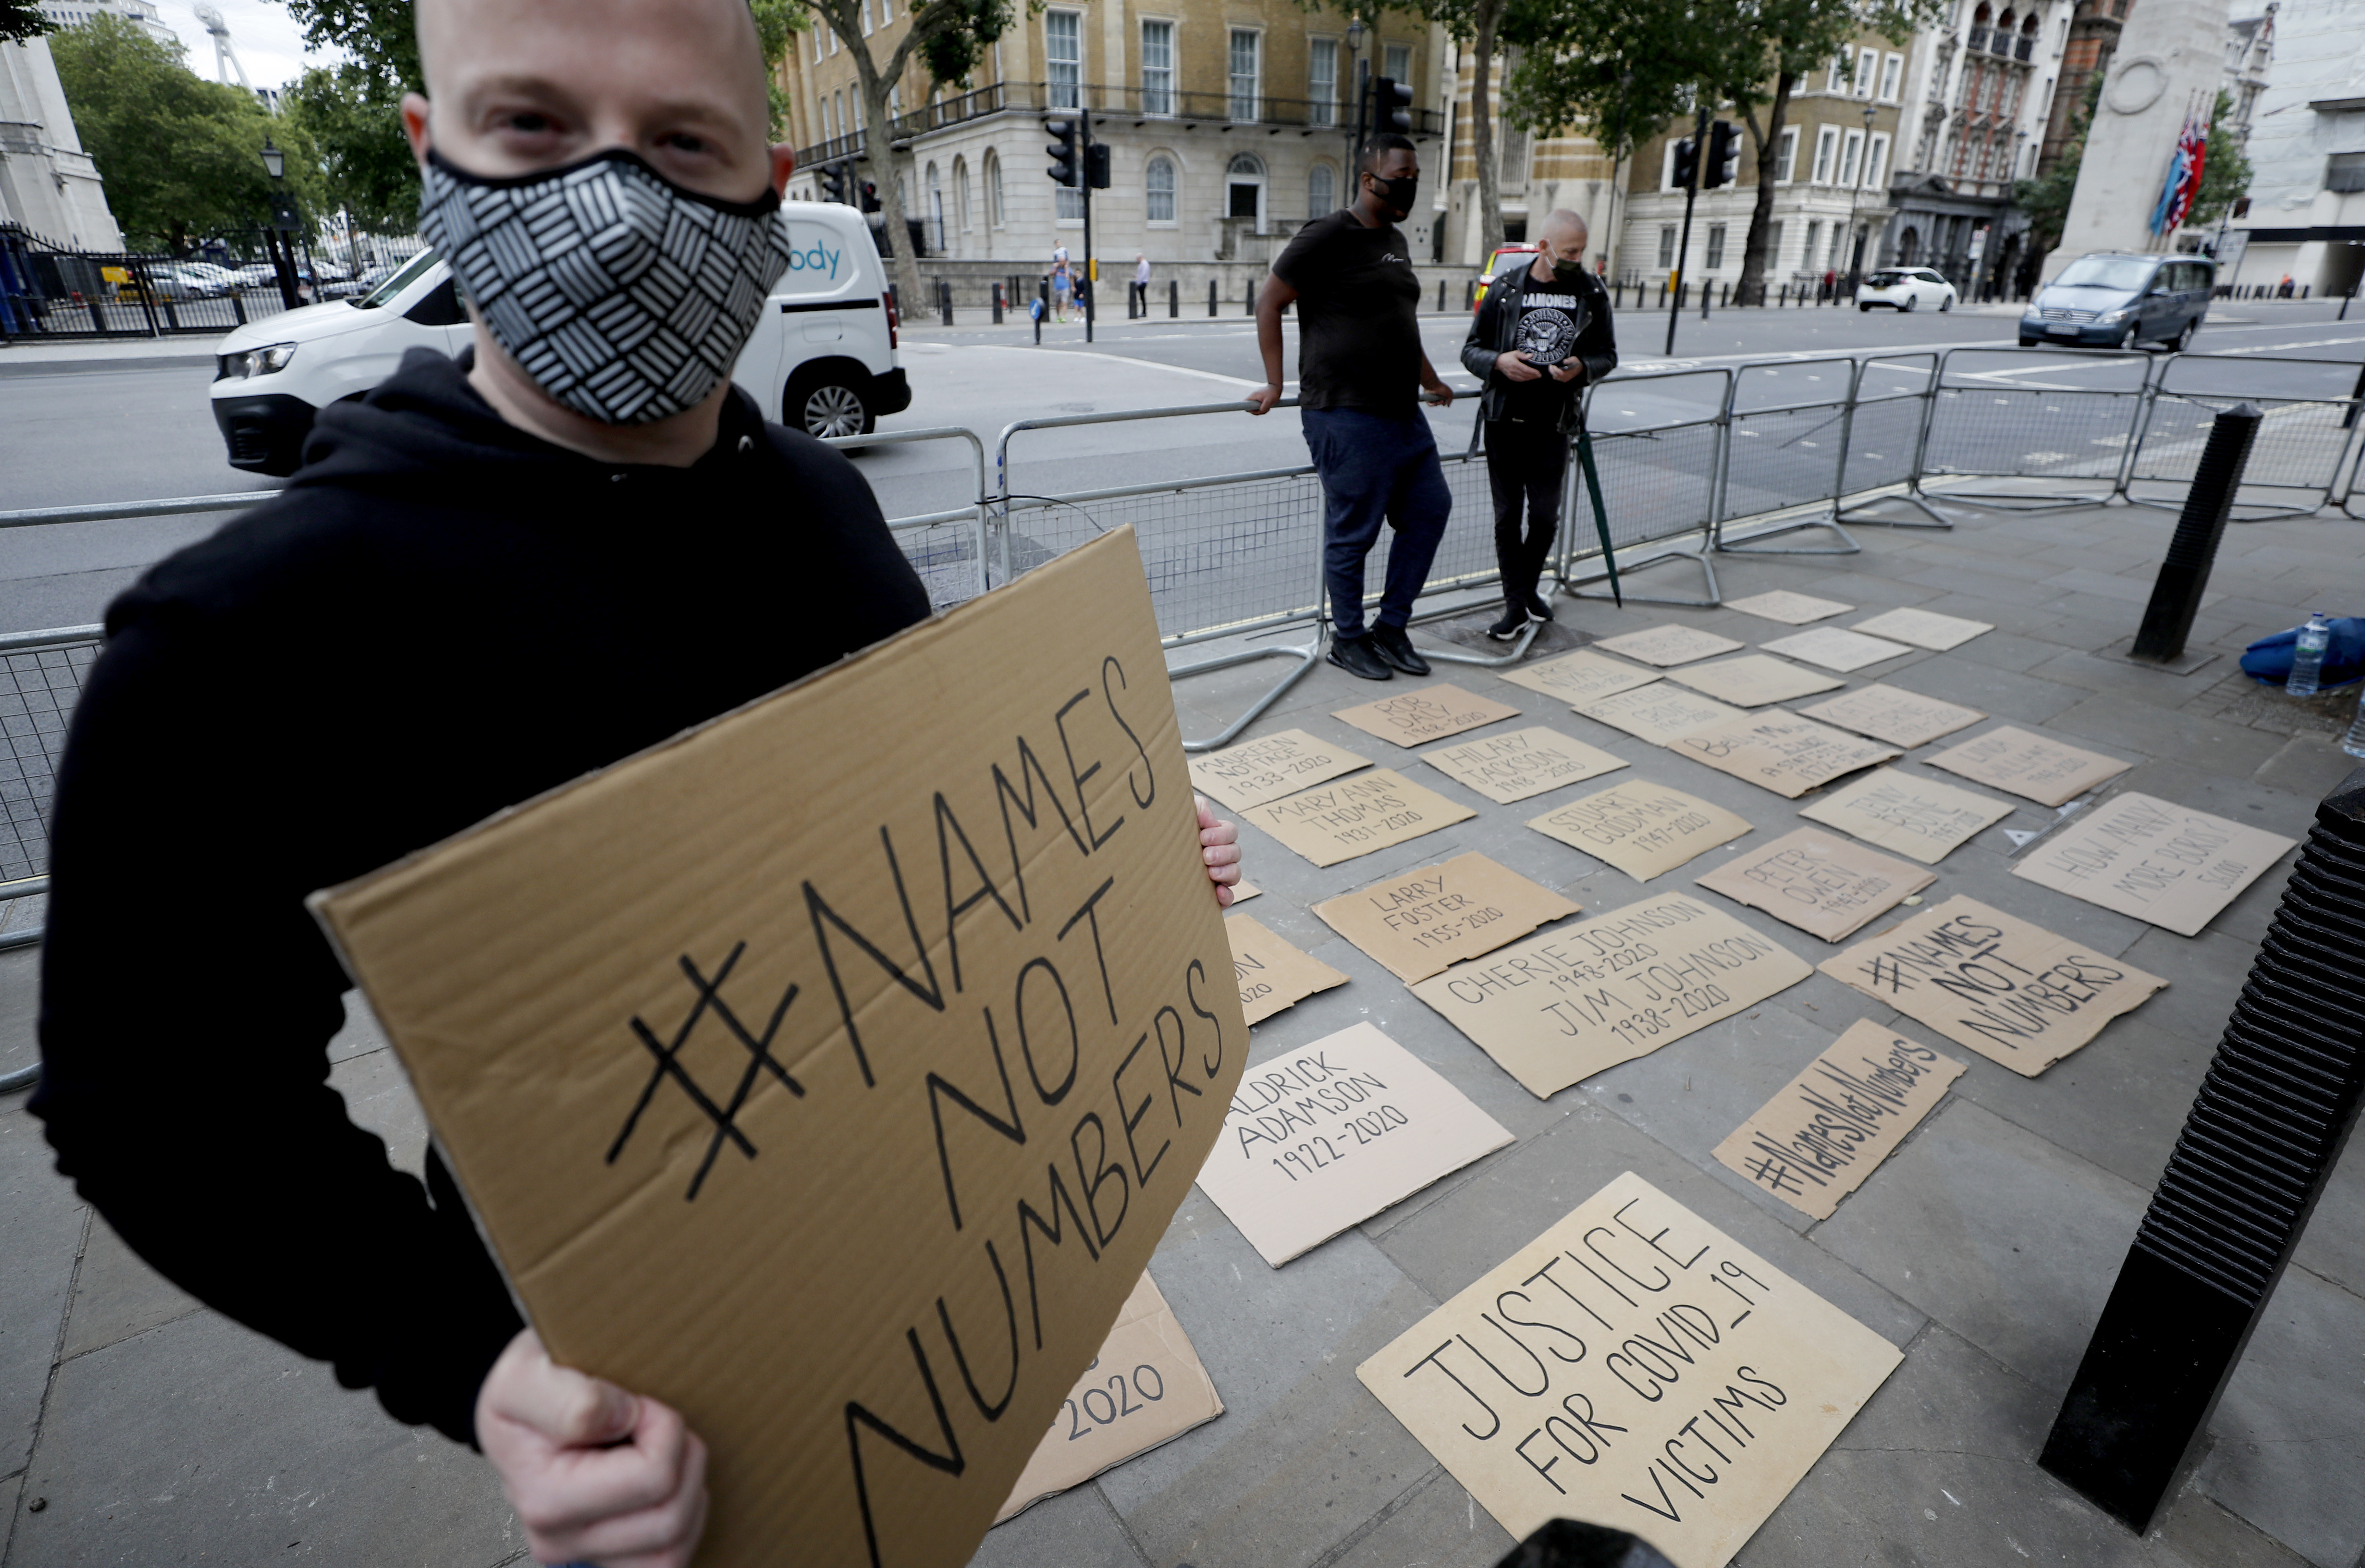 Posters with names of people that died during the COVID-19 pandemic are placed in front of the entrance to Downing Street in London, Wednesday, July 15, 2020. (AP Photo/Frank Augstein)